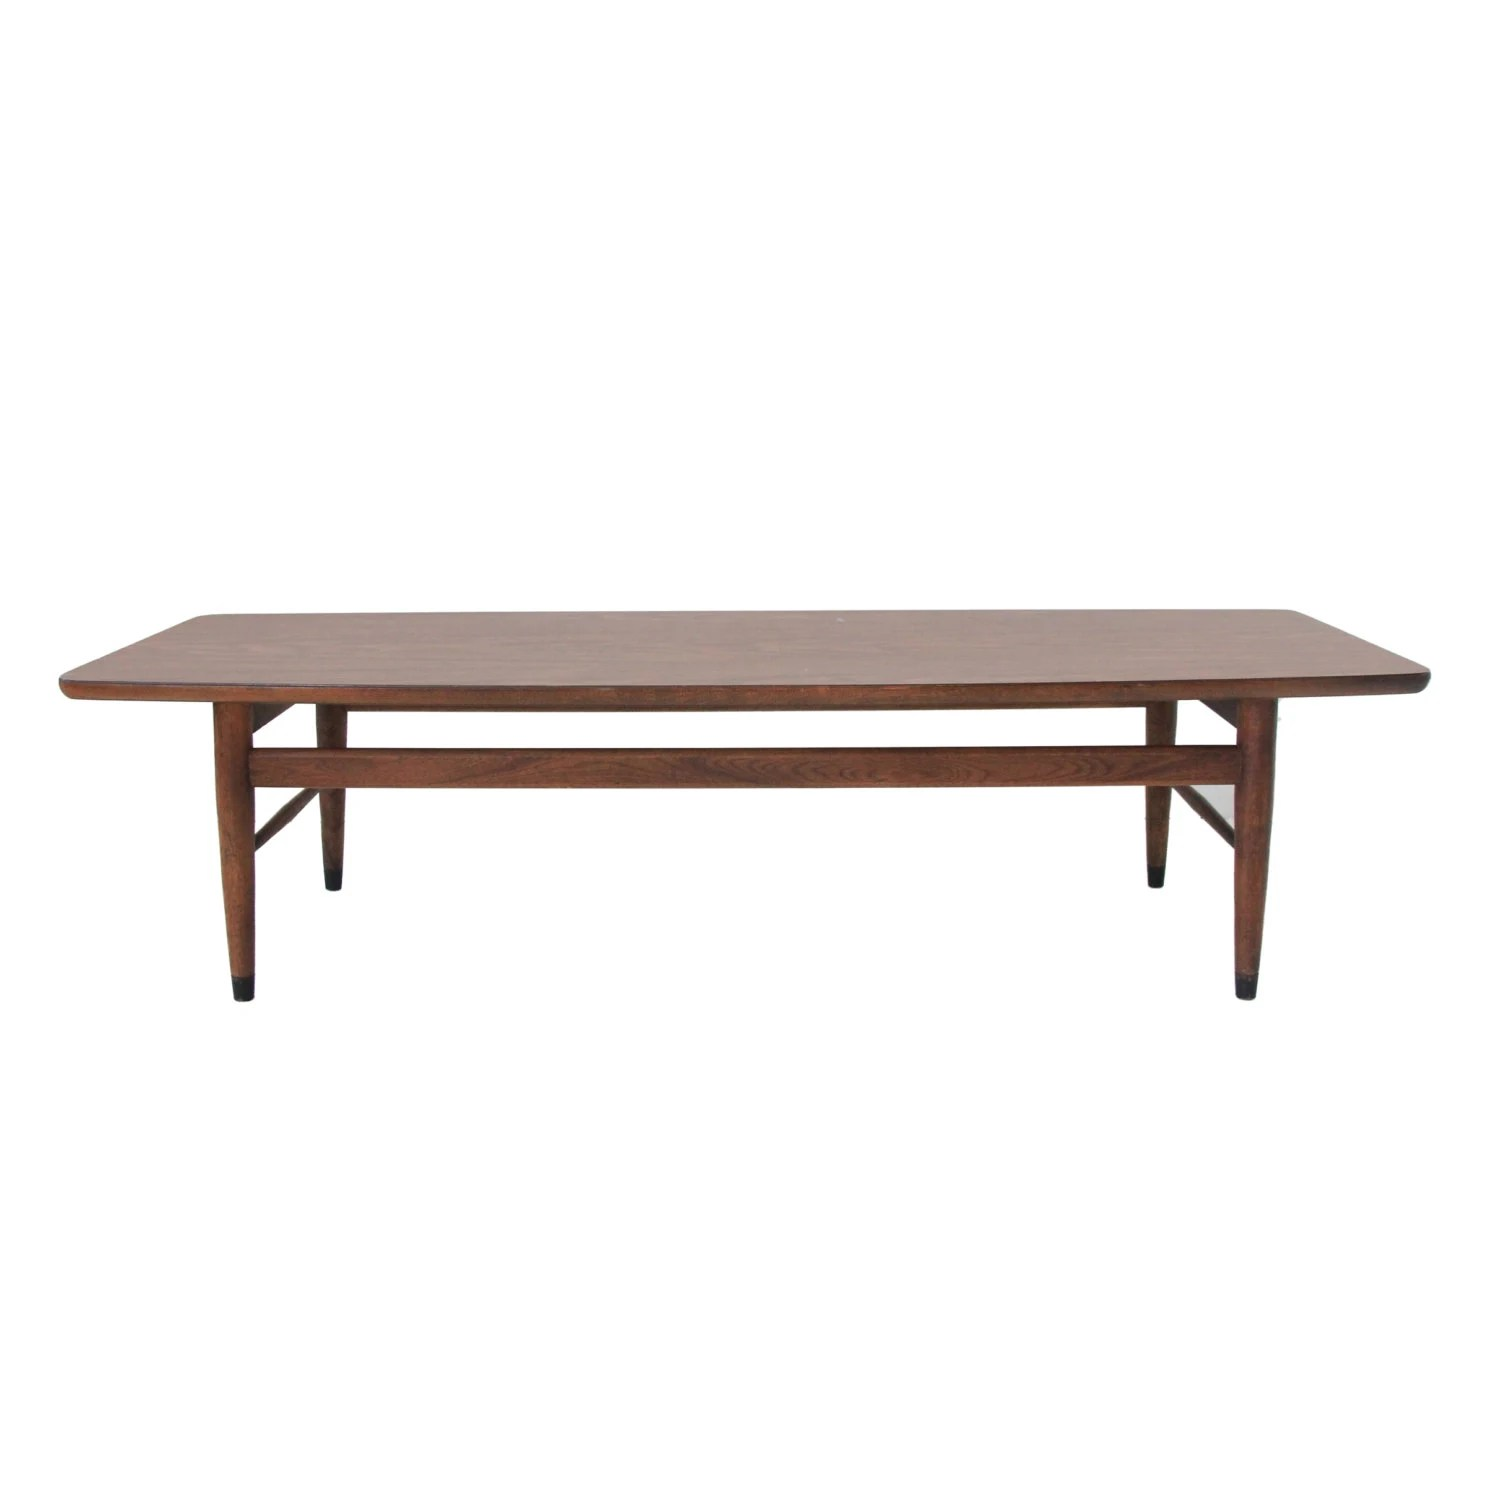 Vintage Mid Century Modern Coffee Table Vintage Swedish Mid Century Modern Teak Coffee Table